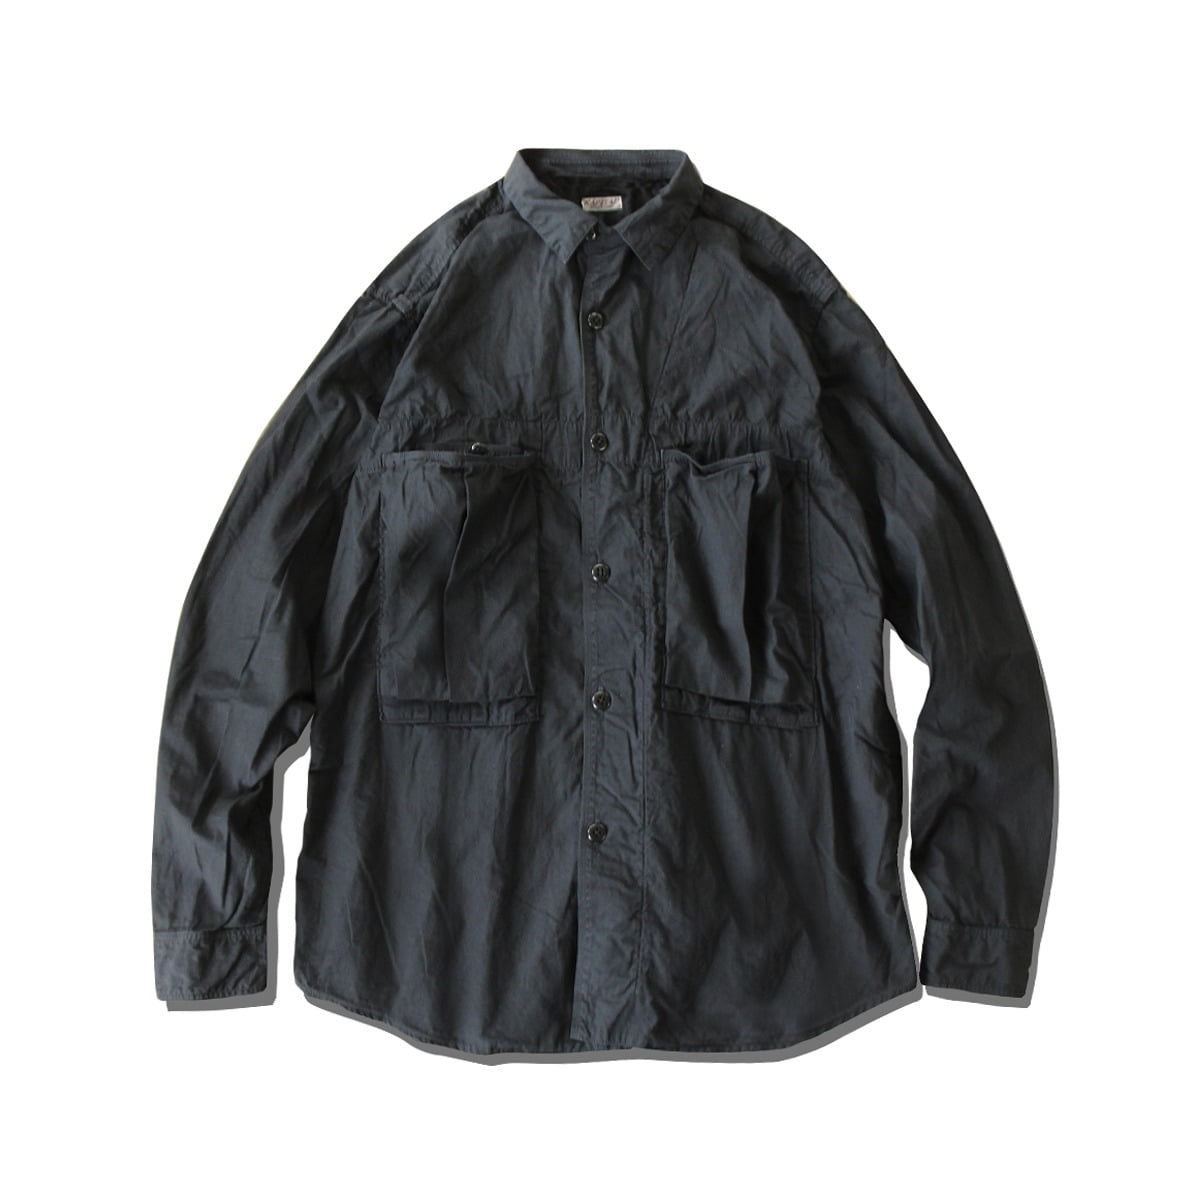 [KAPITAL] BROAD CLOTH ANORAK SHIRT 'BLACK'